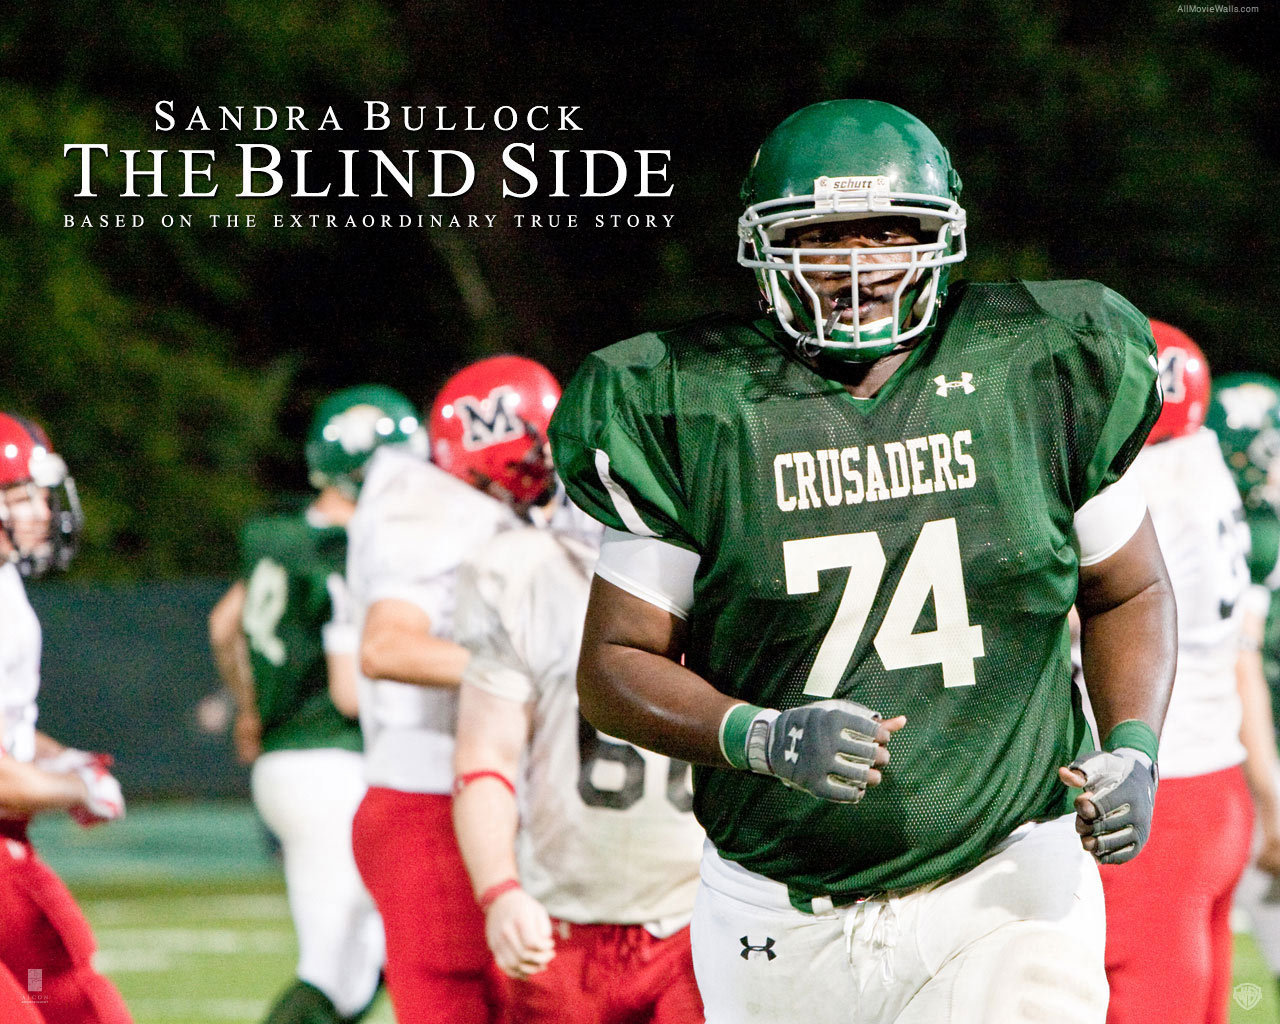 the blind side The blind side 8,302,557 likes 2,556 talking about this the official facebook page for the blind side | based on the extraordinary true story.